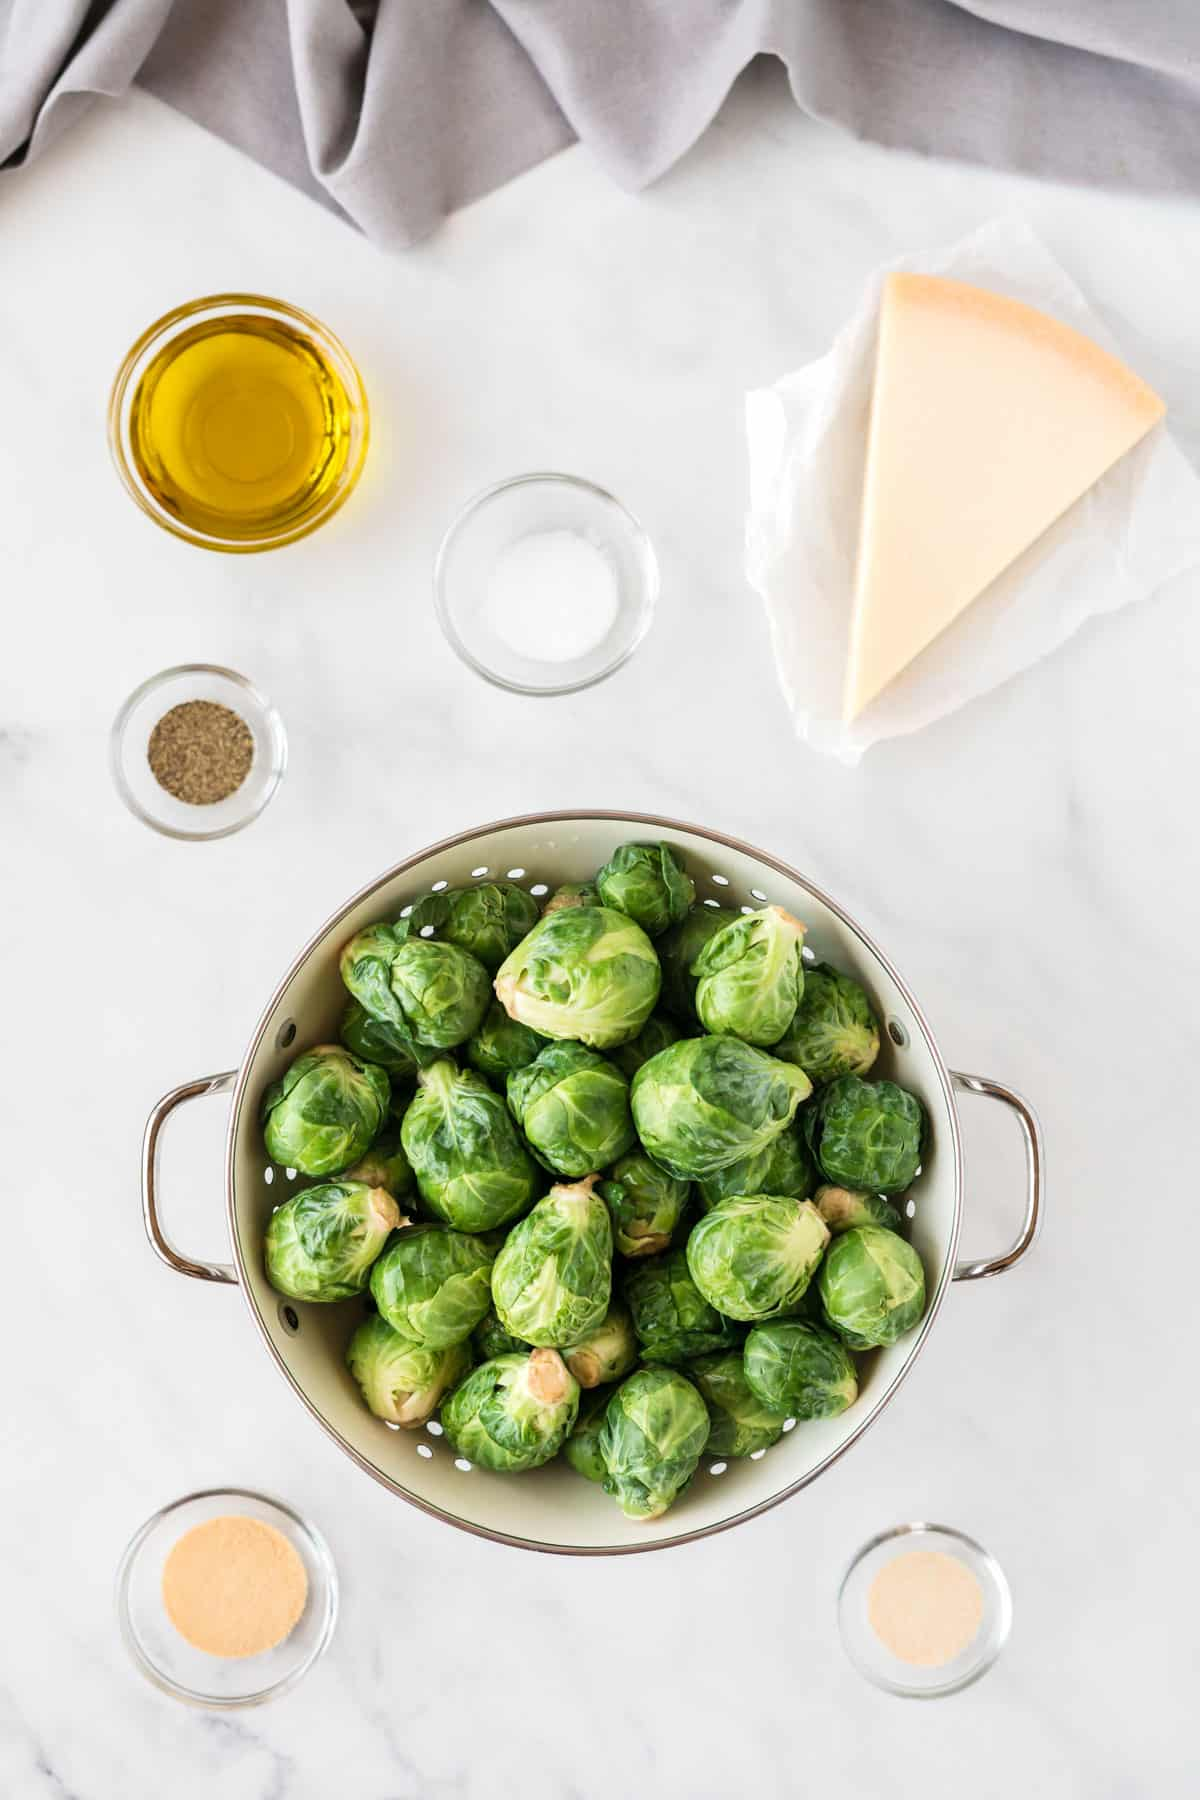 ingredients to make roasted brussel sprouts